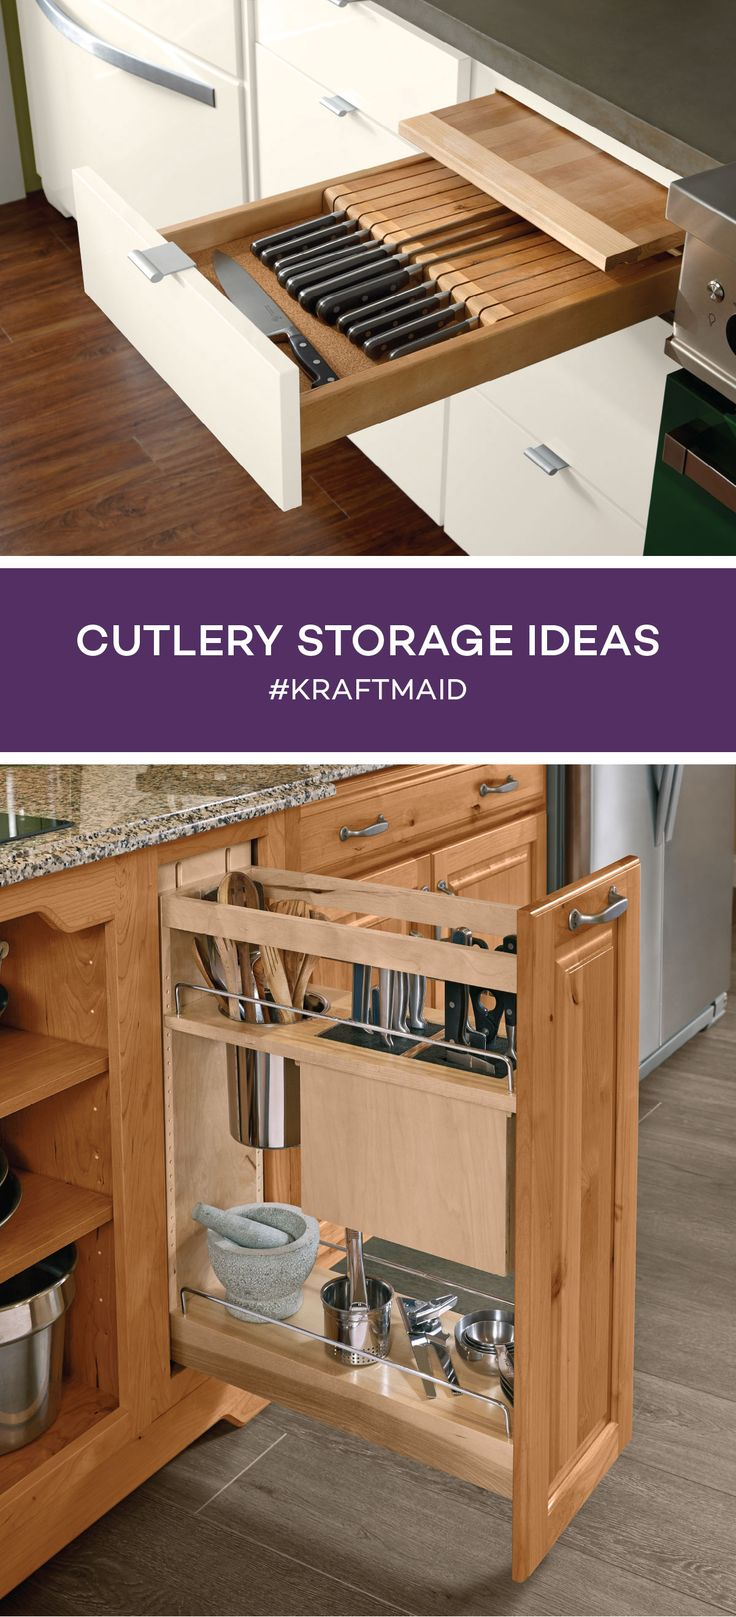 There are many ways to store cutlery in your kitchen. Here are a few ideas to help you create a functional space that makes sense for how you work in your kitchen.